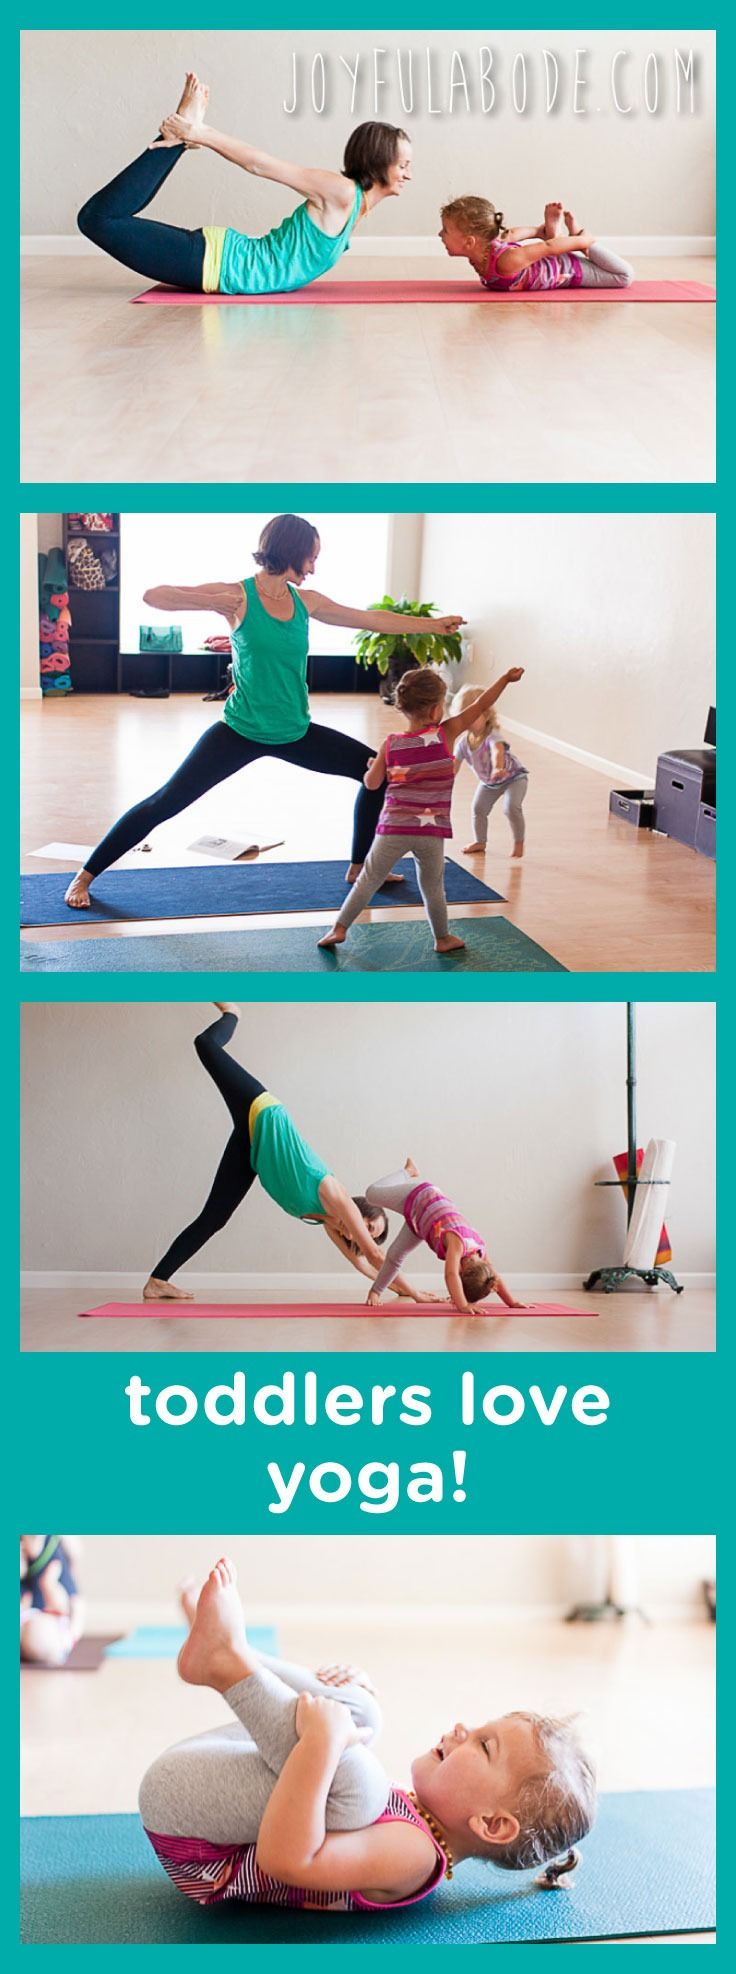 We love yoga for little ones! This toddler activity is a fun way to switch up your toddler playtime.